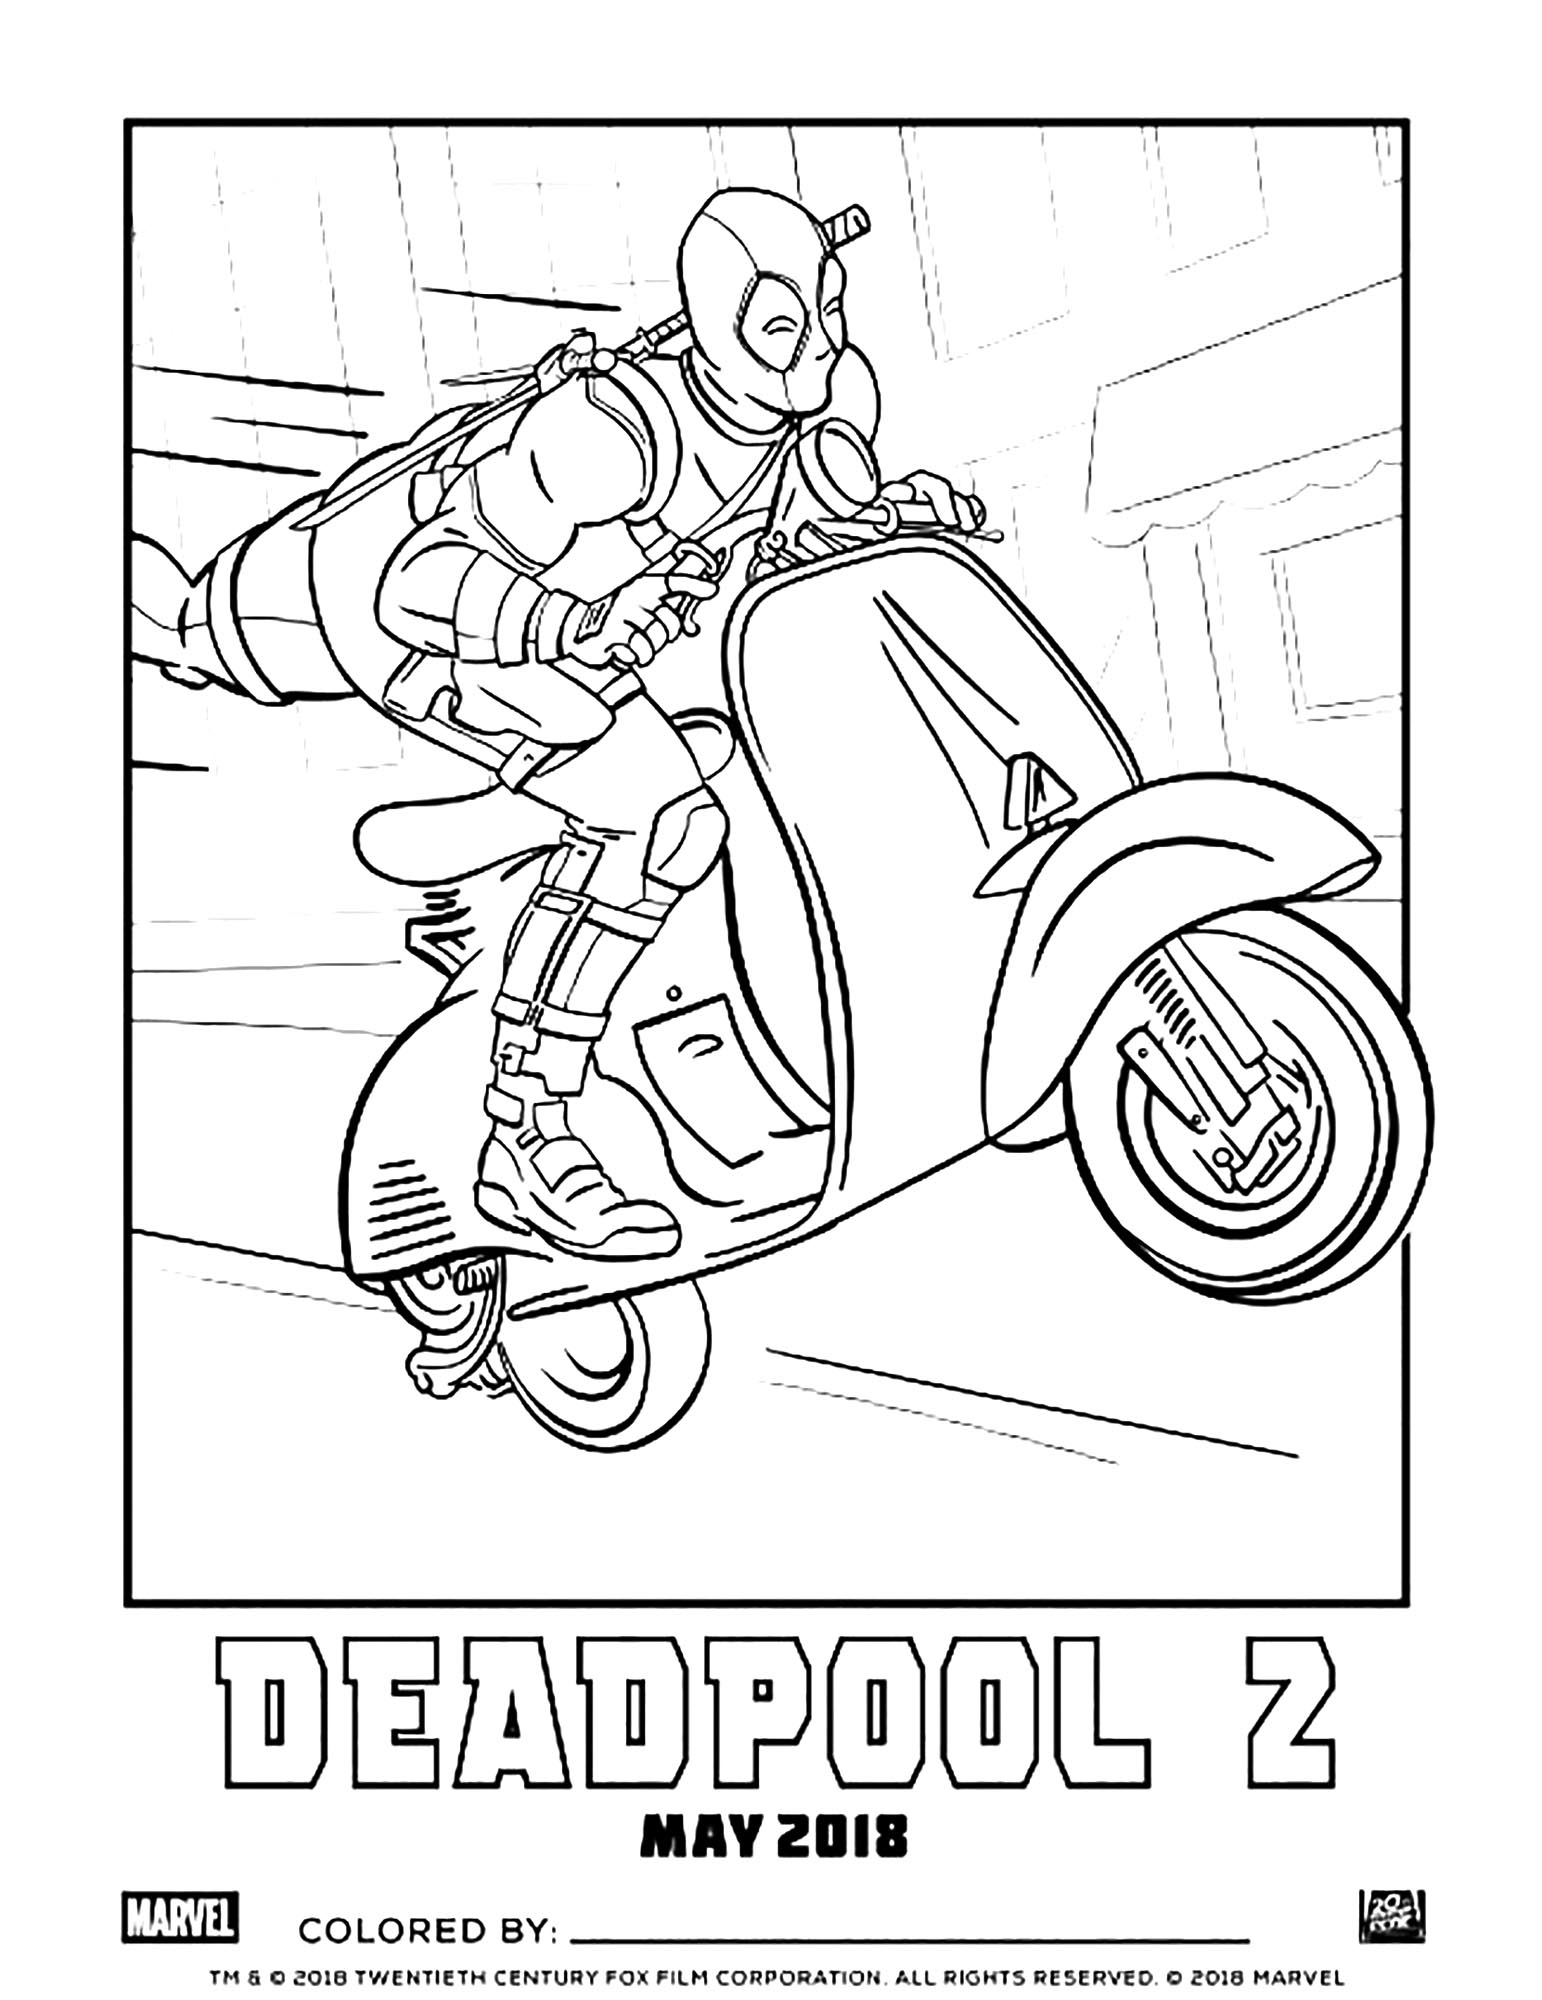 Deadpool coloring page to print and color